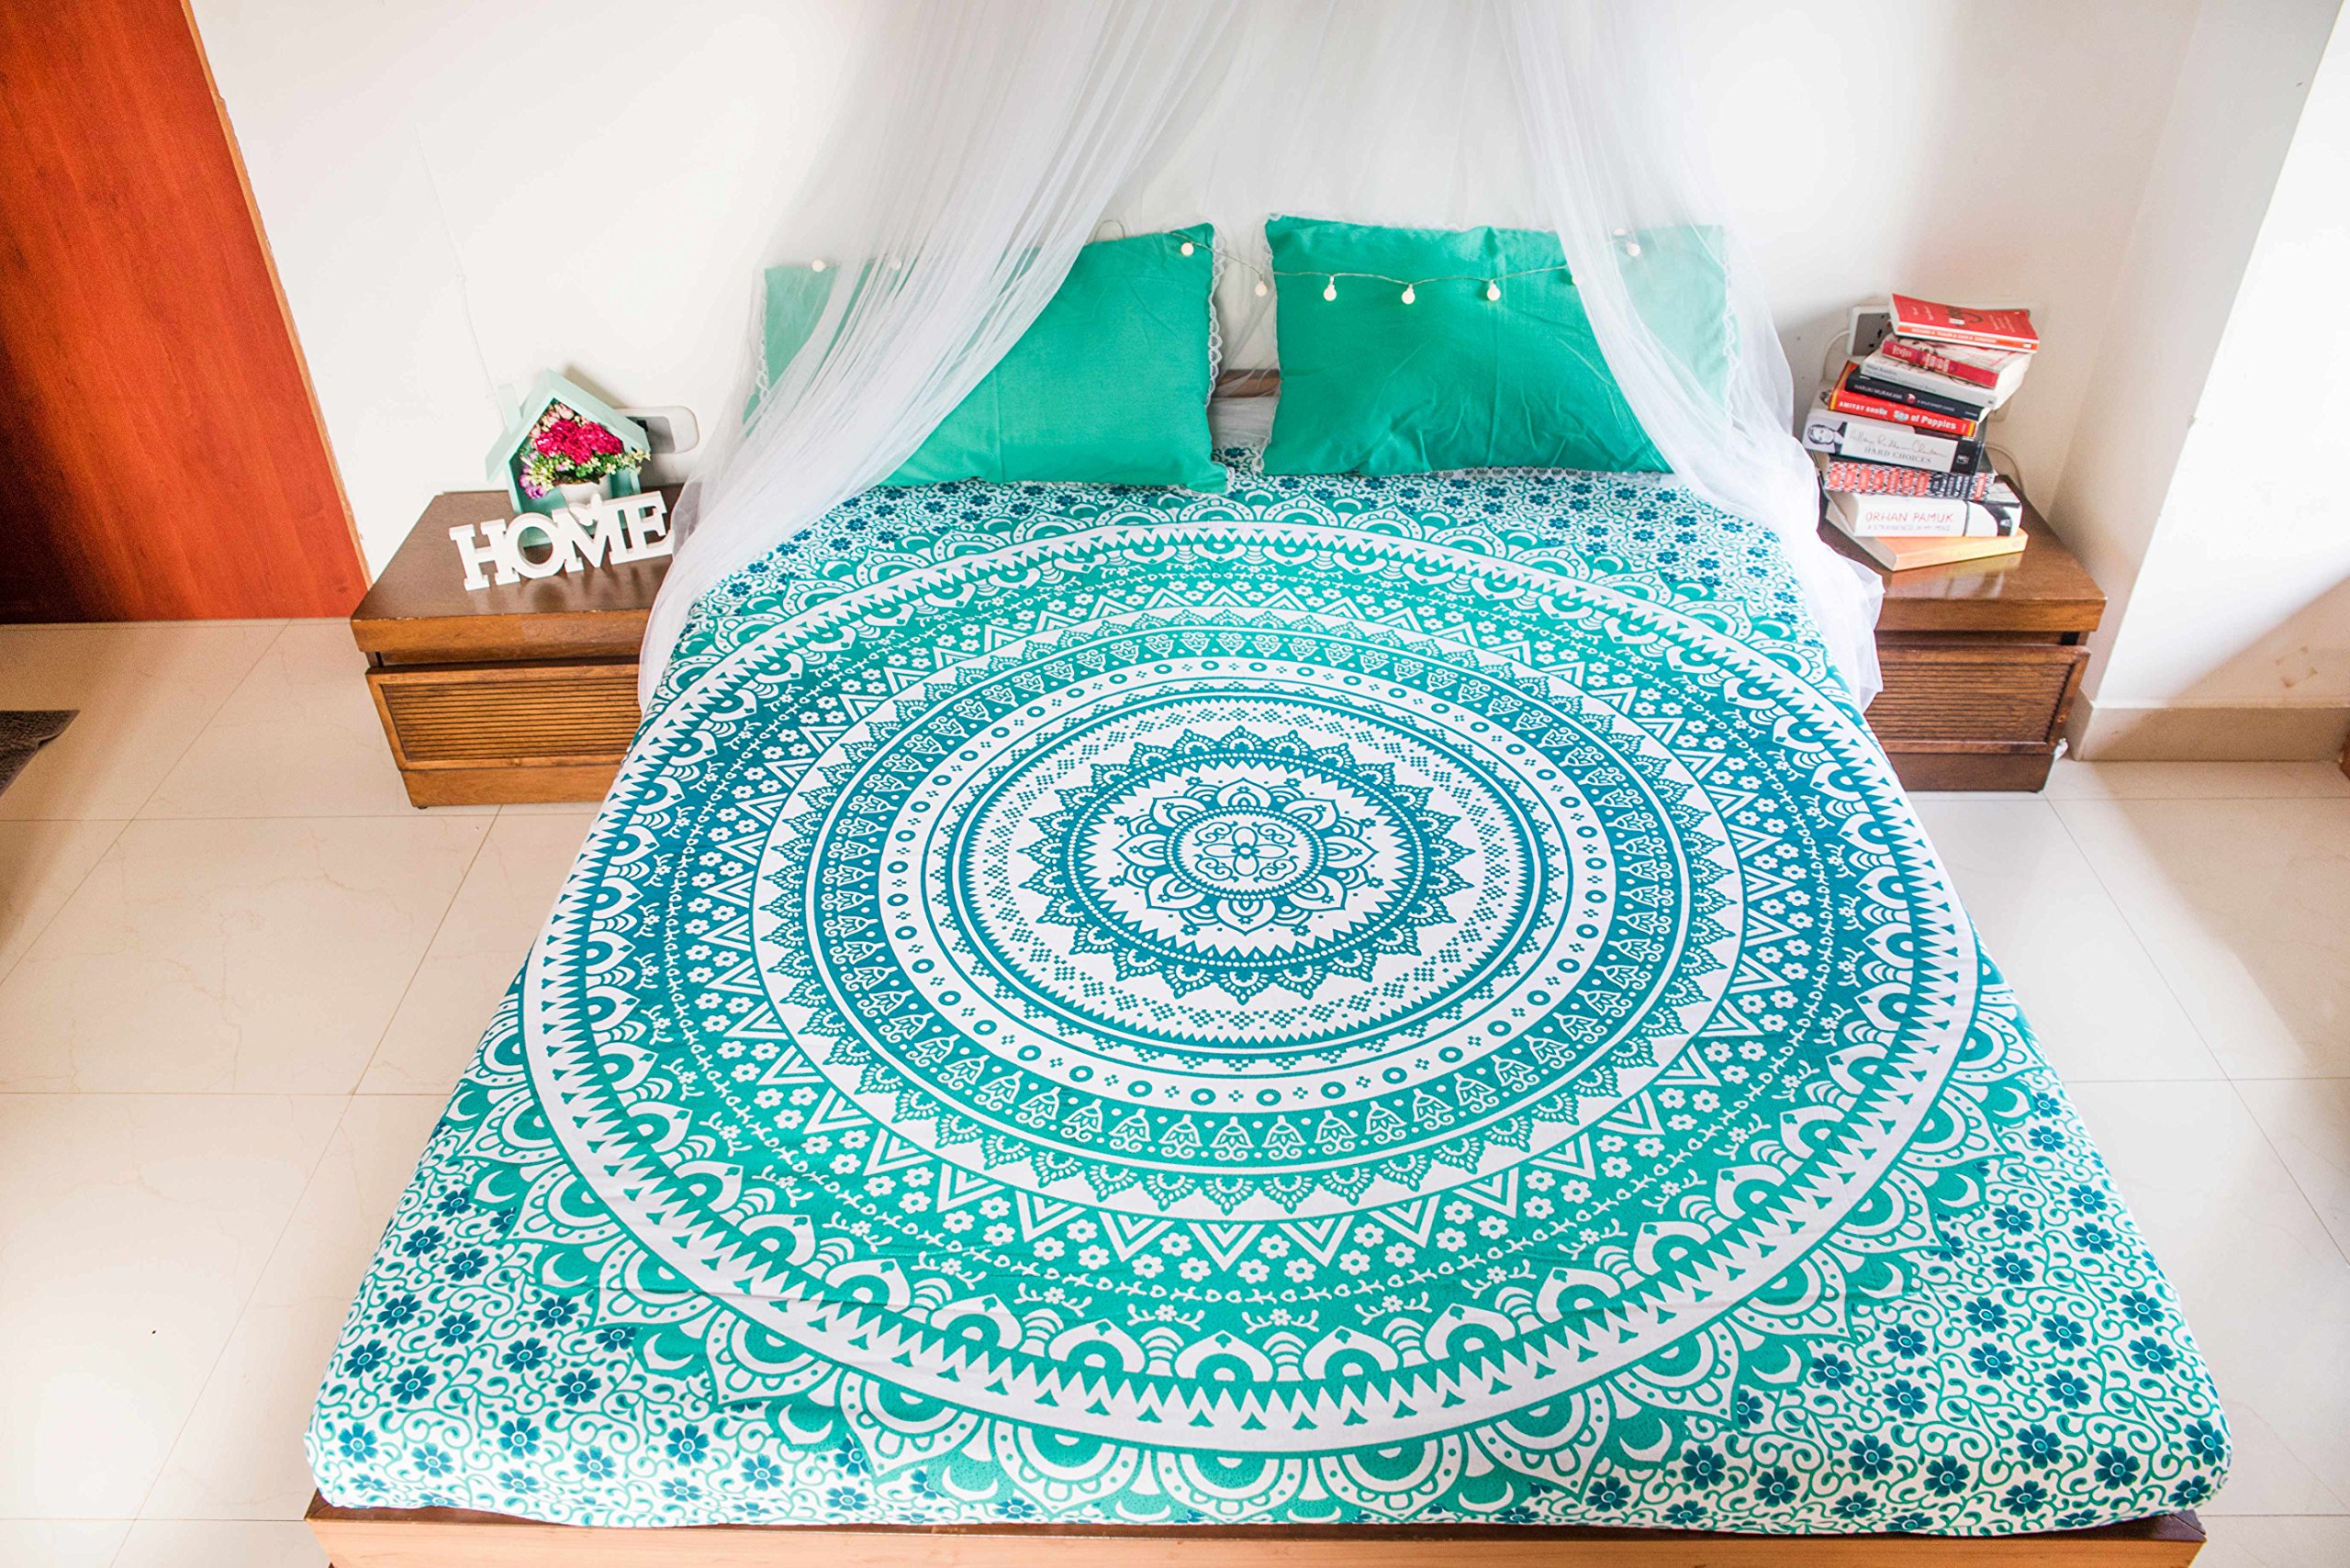 Hippie Mandala Tapestry Bedding with 2 Pillow Covers, Bohemian Wall Hanging, Hippy Blanket or Picnic Beach Throw, Indian Ombre Mandala Bedspread for Bedroom Decor, Queen Size Intricate Boho Tapestry